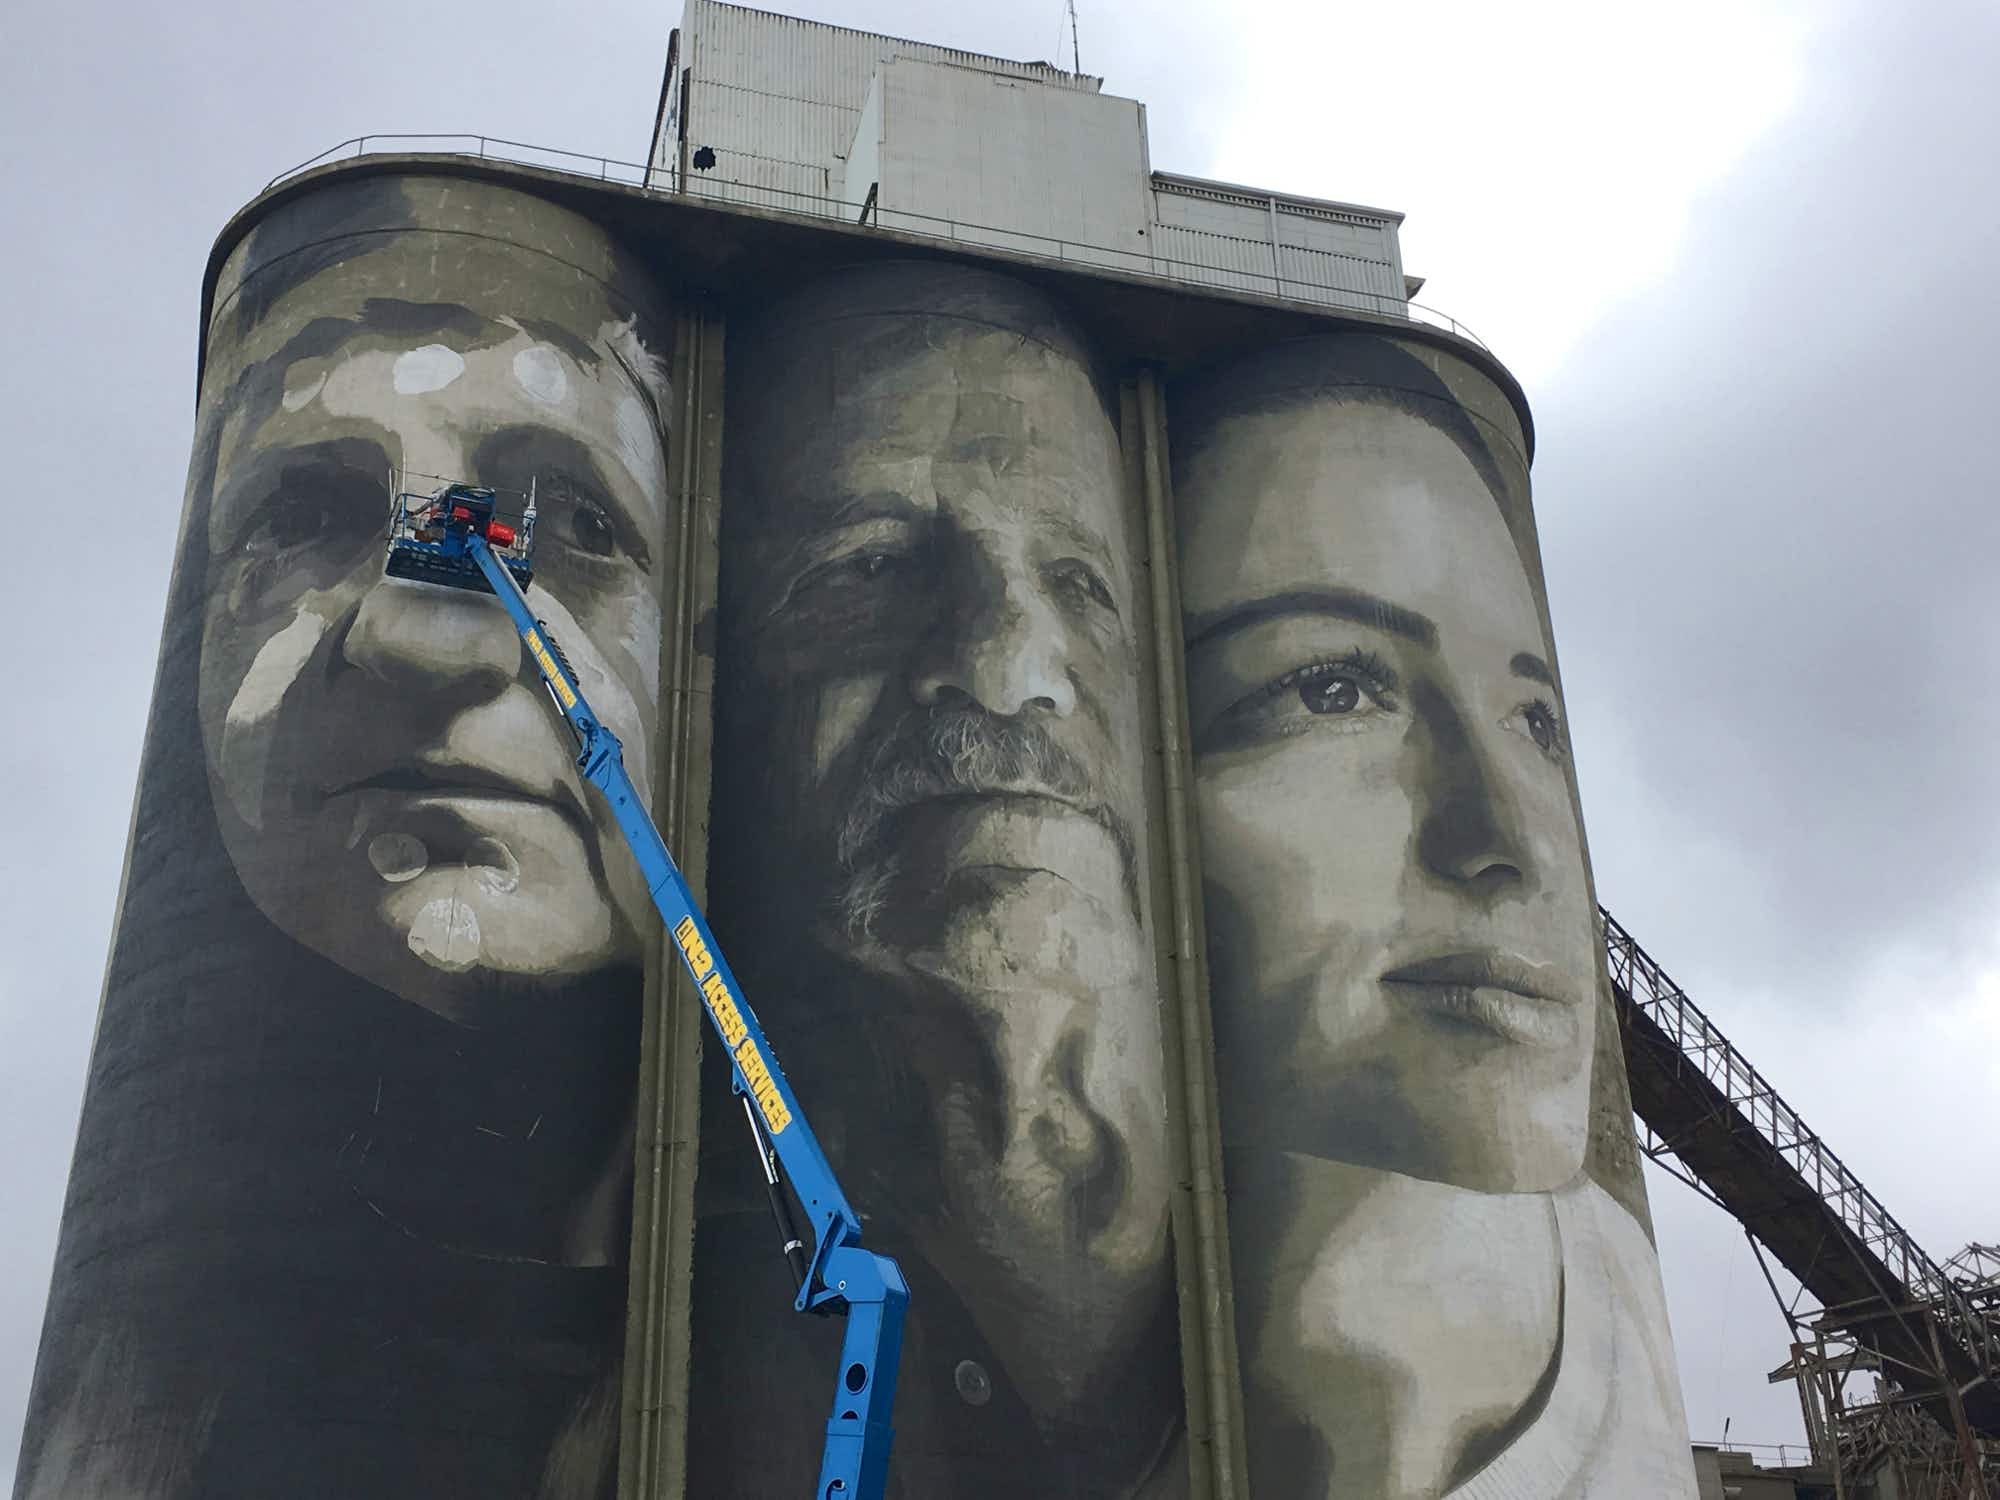 Cement silos in Geelong have been transformed by renowned street artist Rone